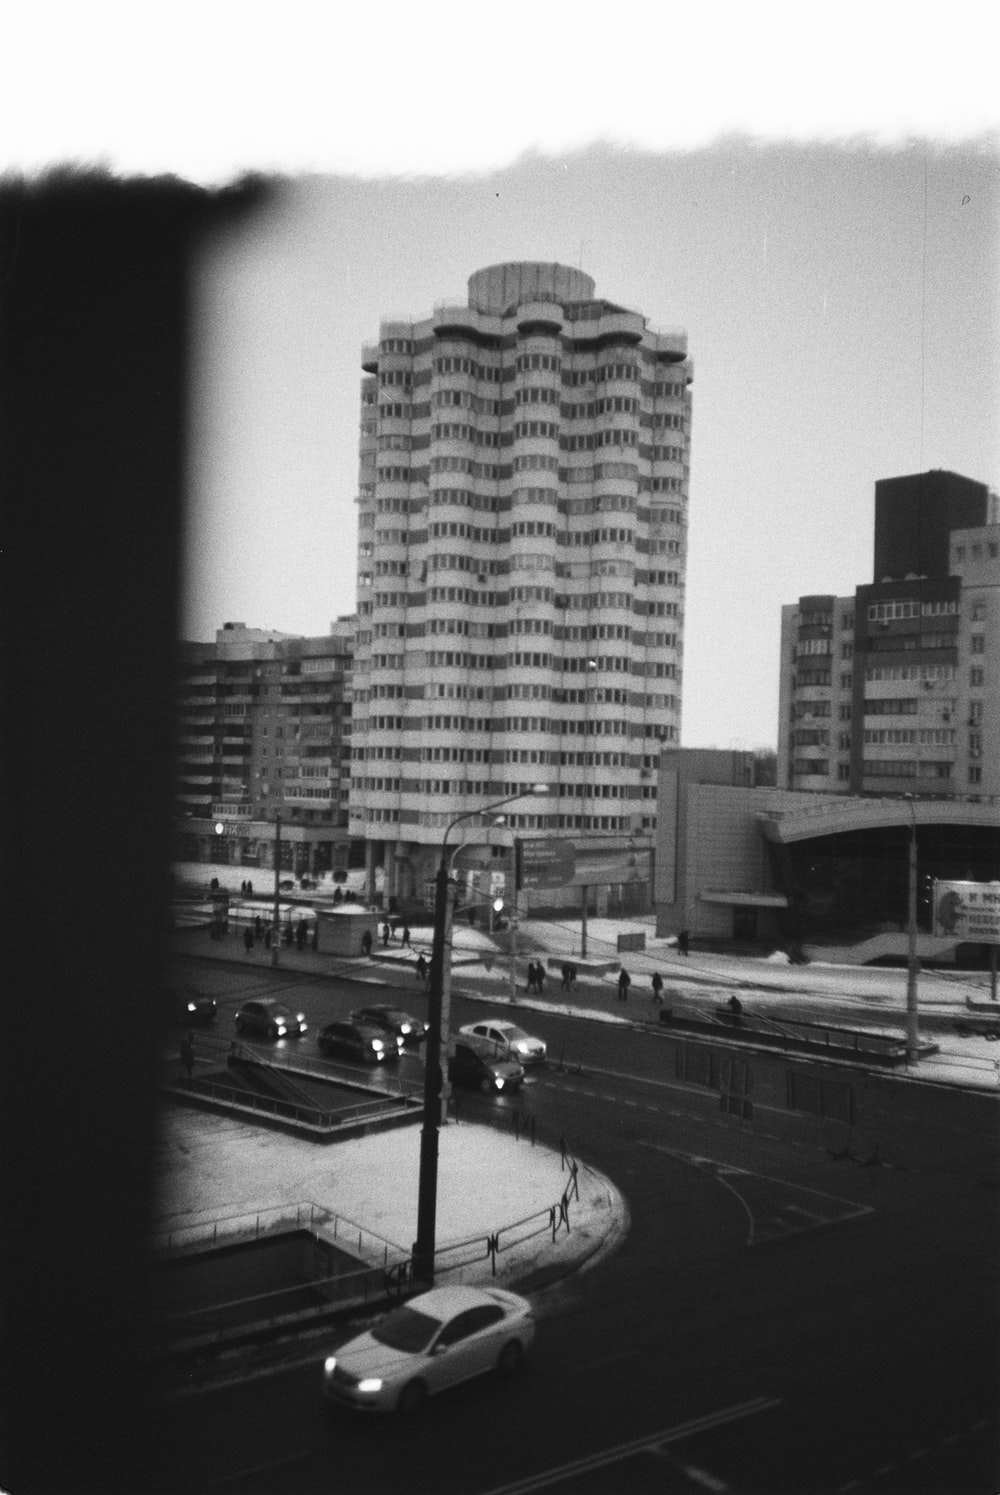 grayscale photography of vehicle beside buildings